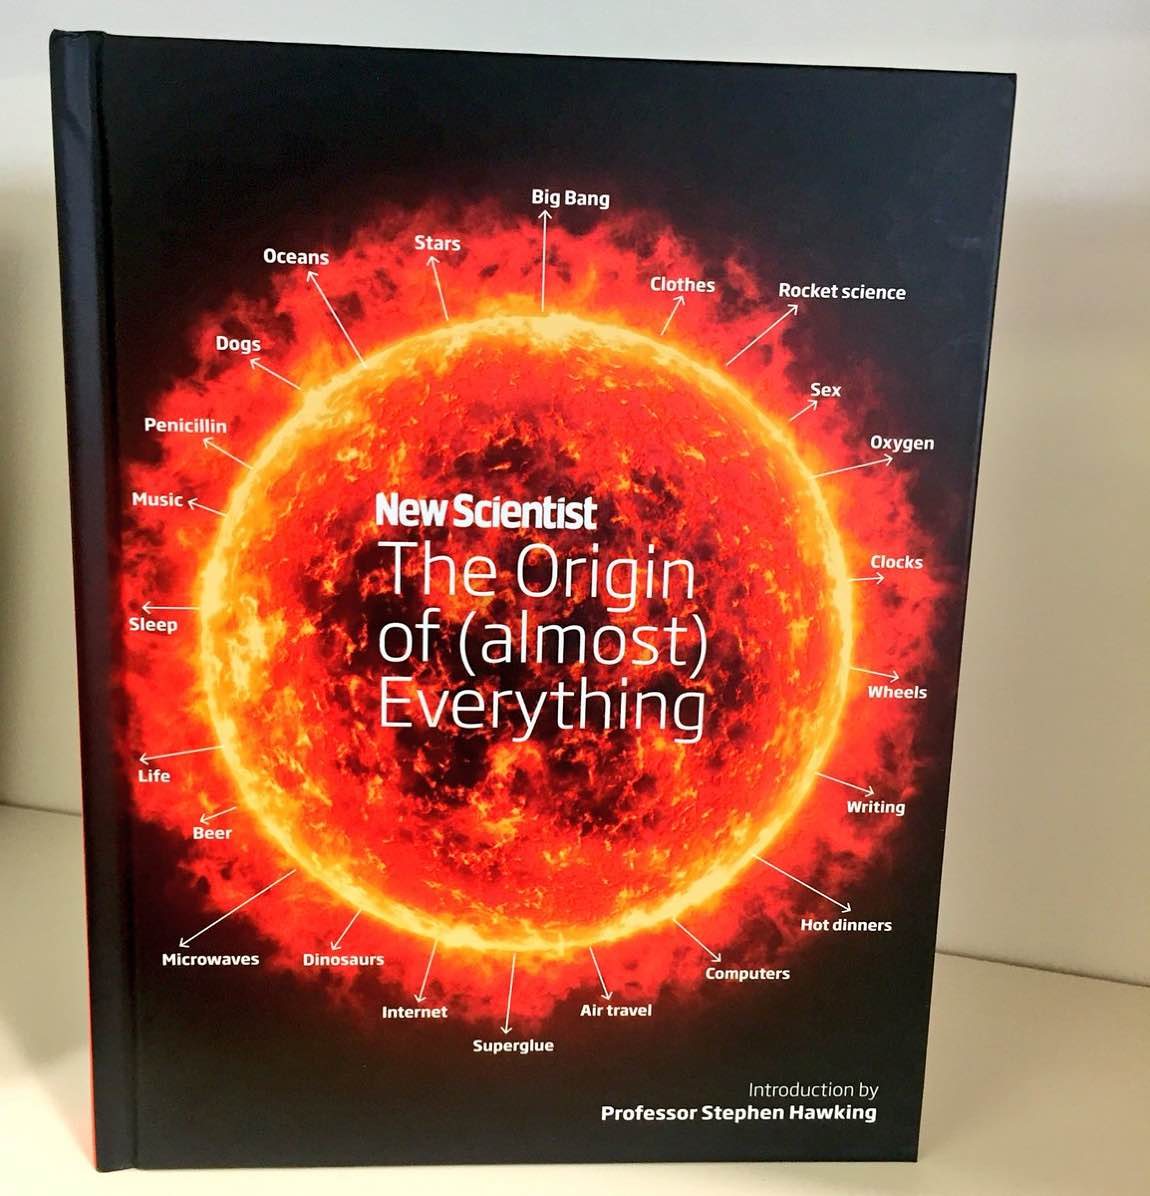 The Origin of (almost) Everything by New Scientist. ($29 hardcover)